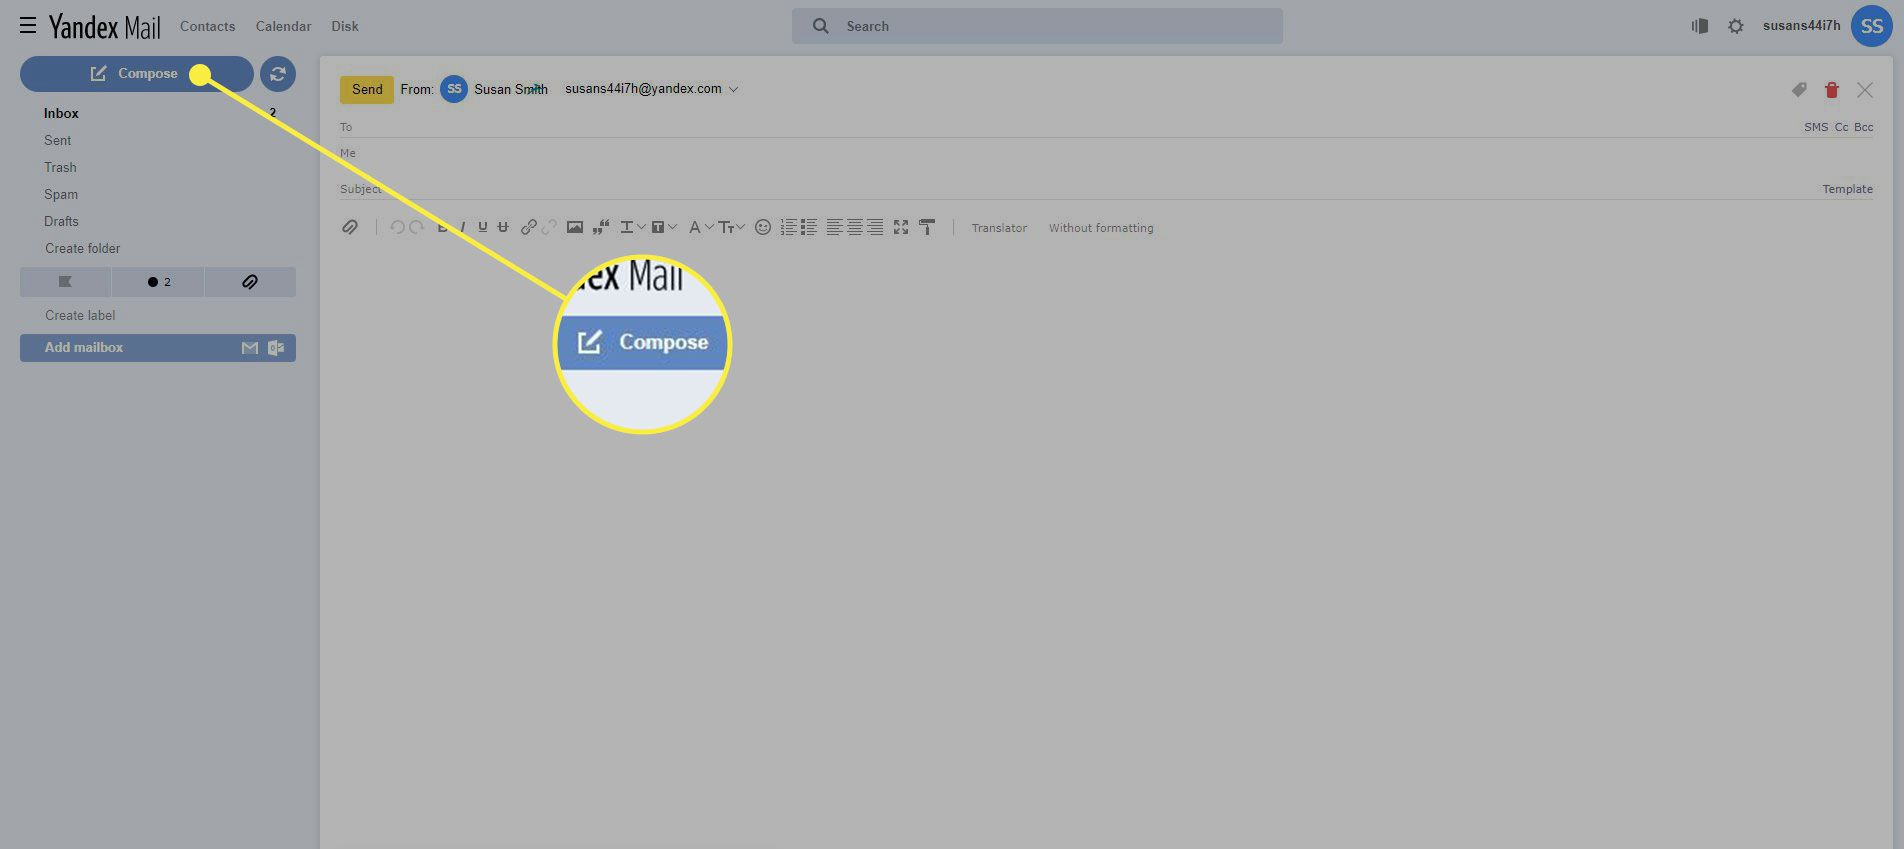 A screenshot of Yandex Mail with the Compose button highlighted